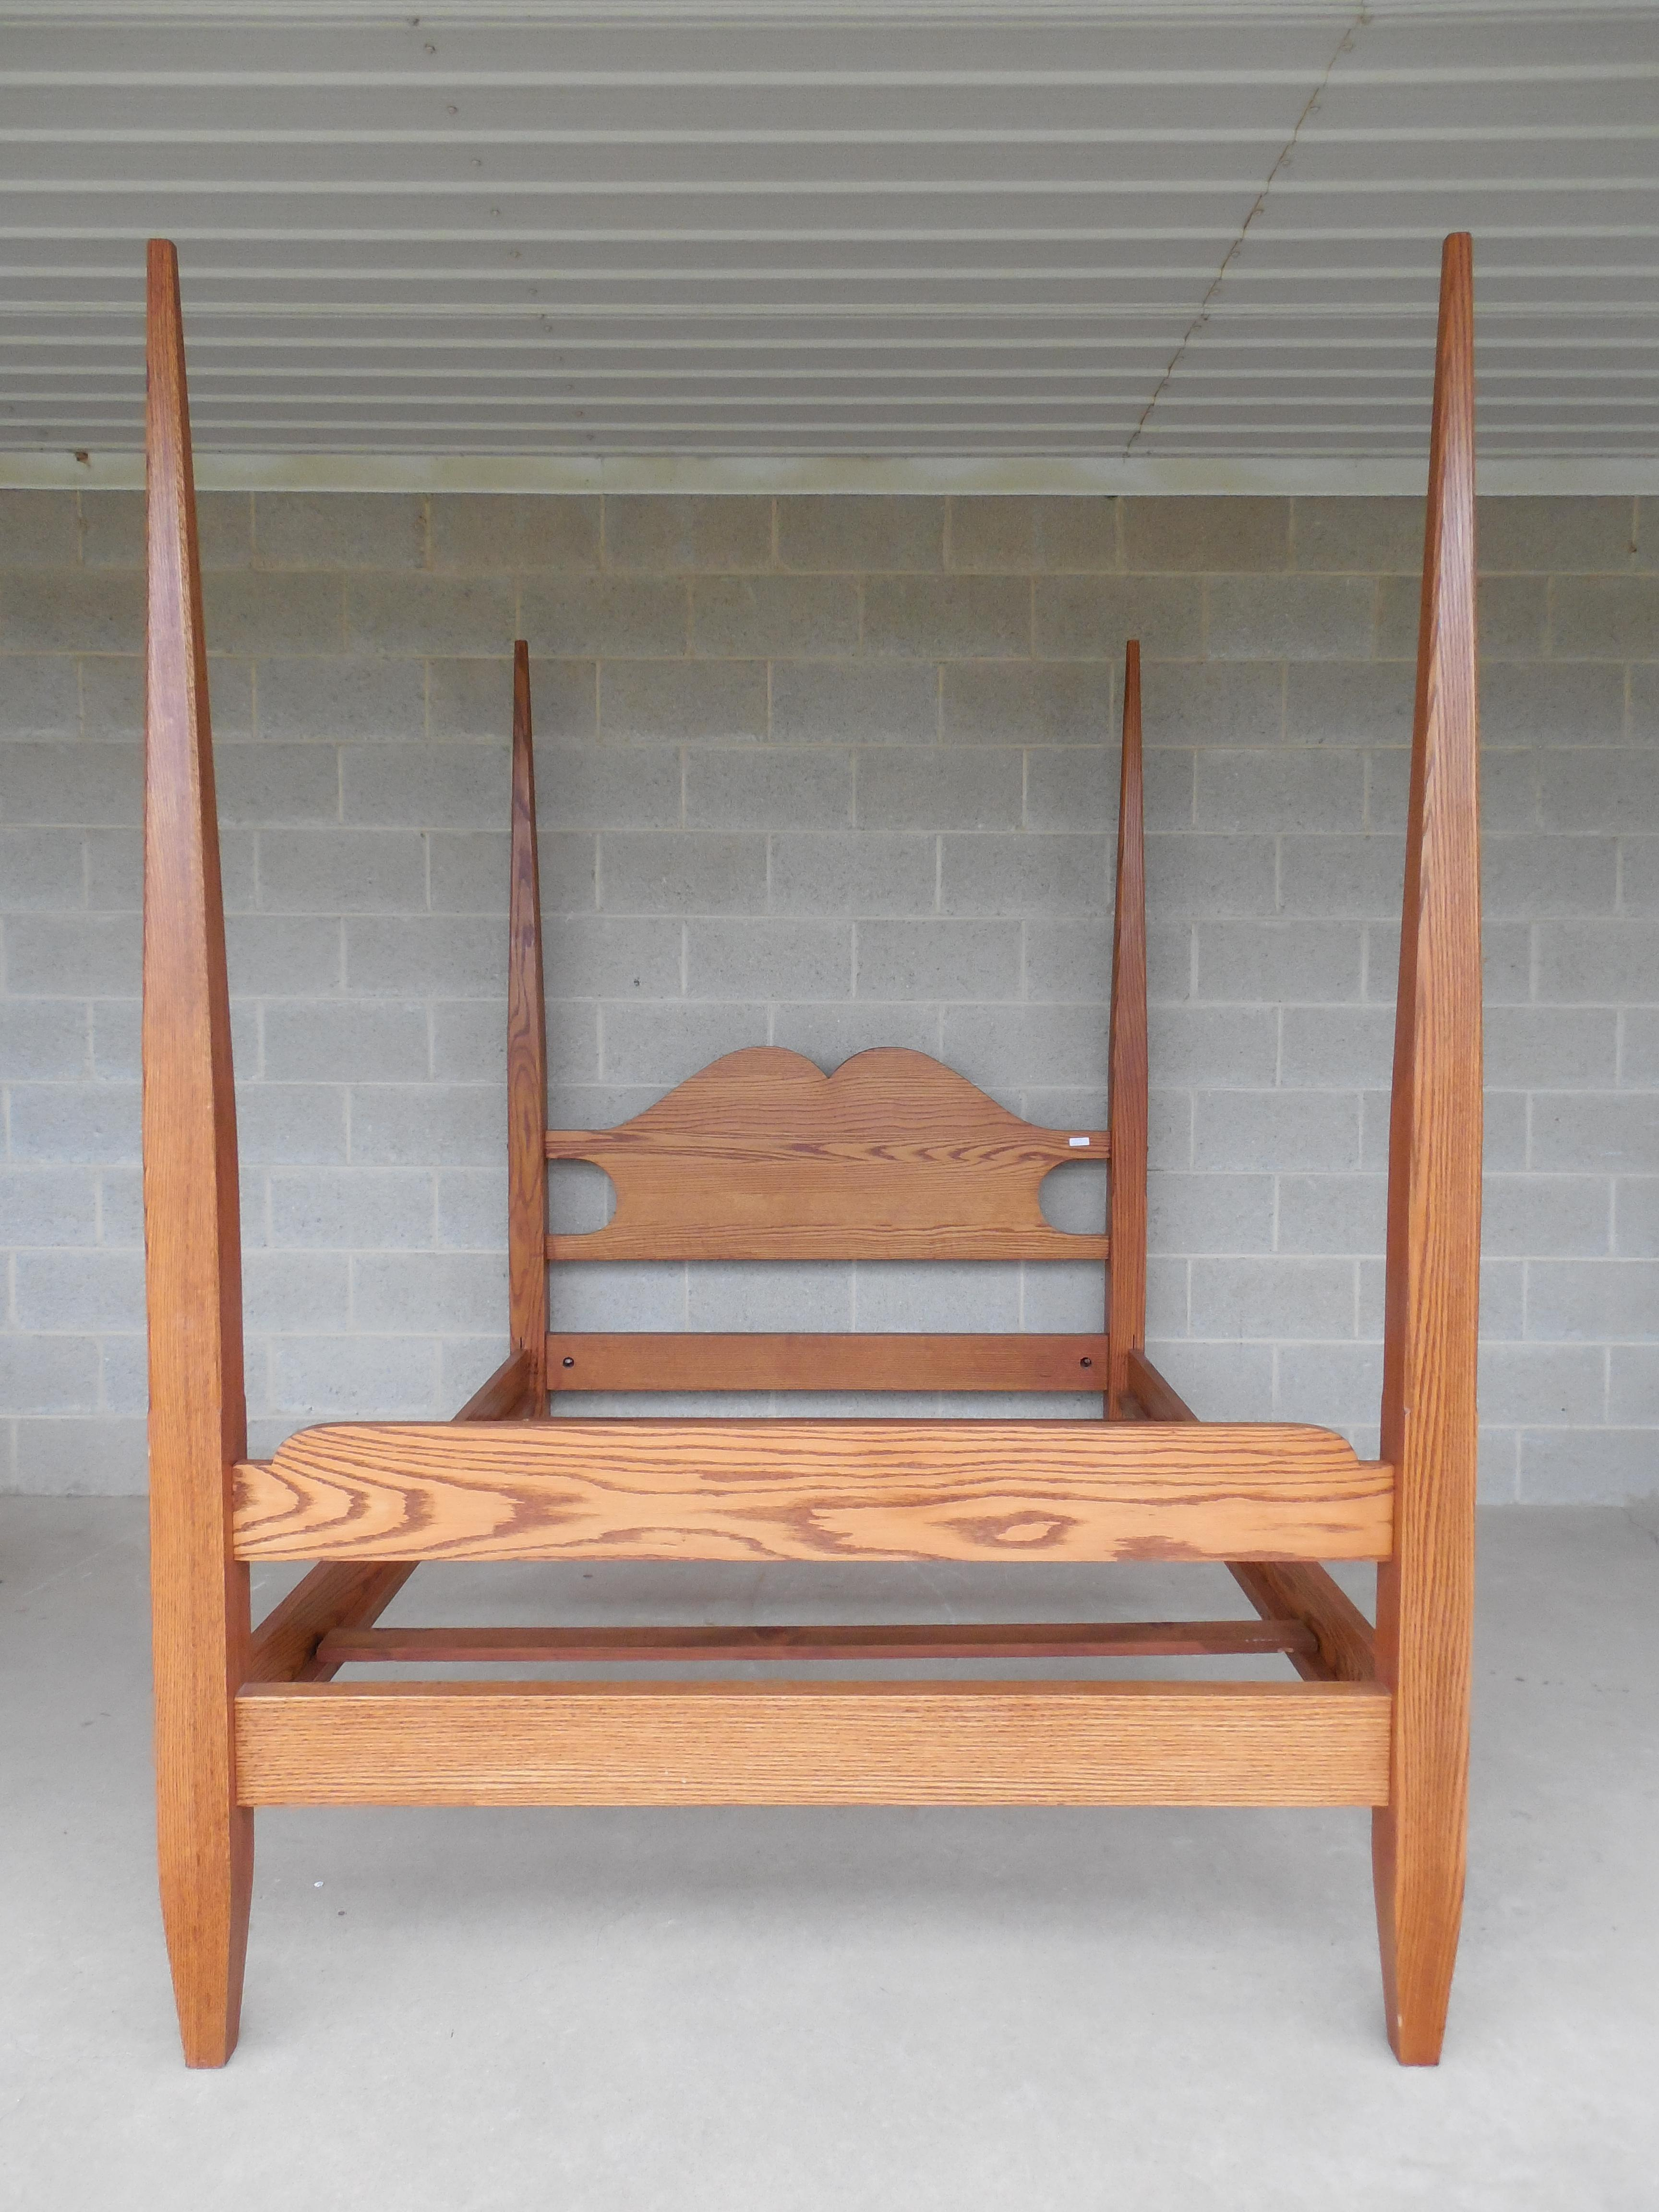 Tom Seely Solid Oak Shaker Style Full Size Tester Canopy Poster Bed - Image 6 of  sc 1 st  Chairish & Tom Seely Solid Oak Shaker Style Full Size Tester Canopy Poster ...